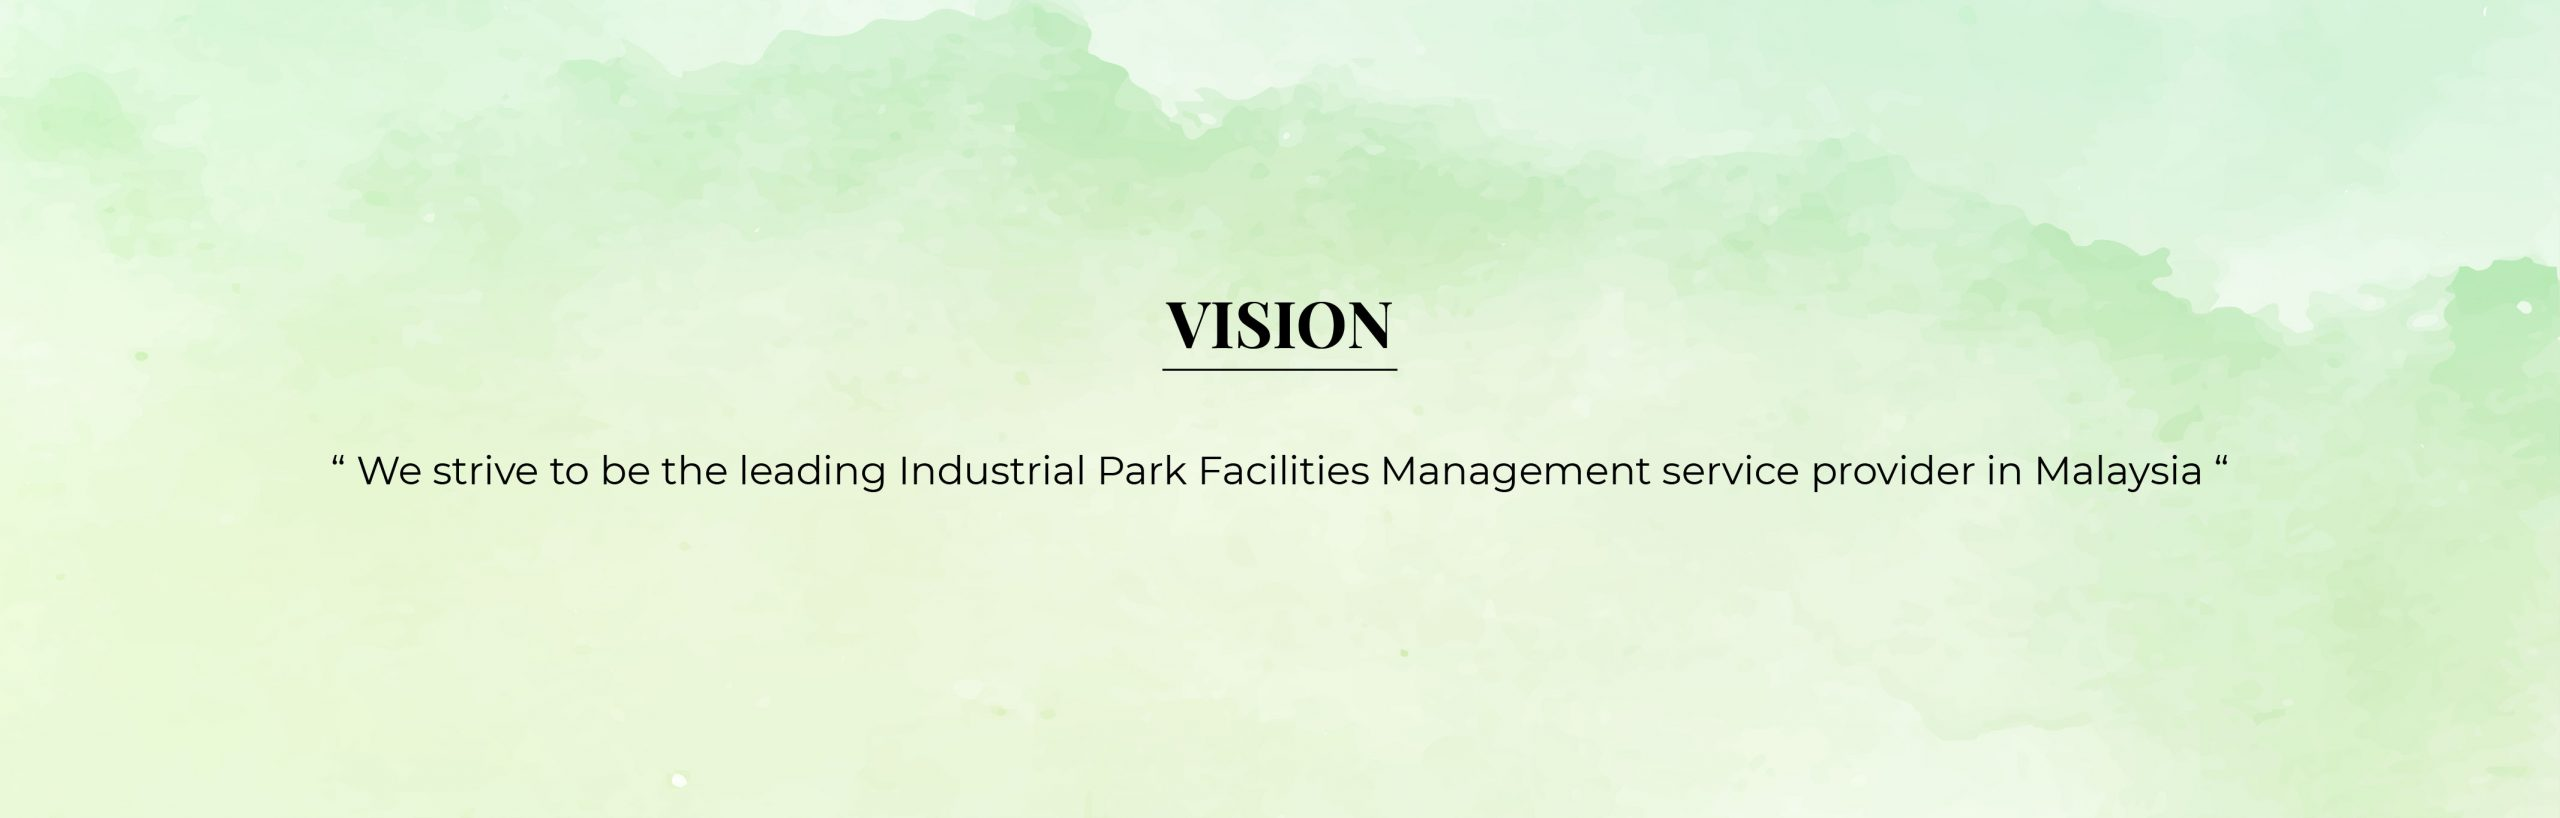 Vision - We strive to be leading Industrial Park Facilities Management service provider in Malaysia